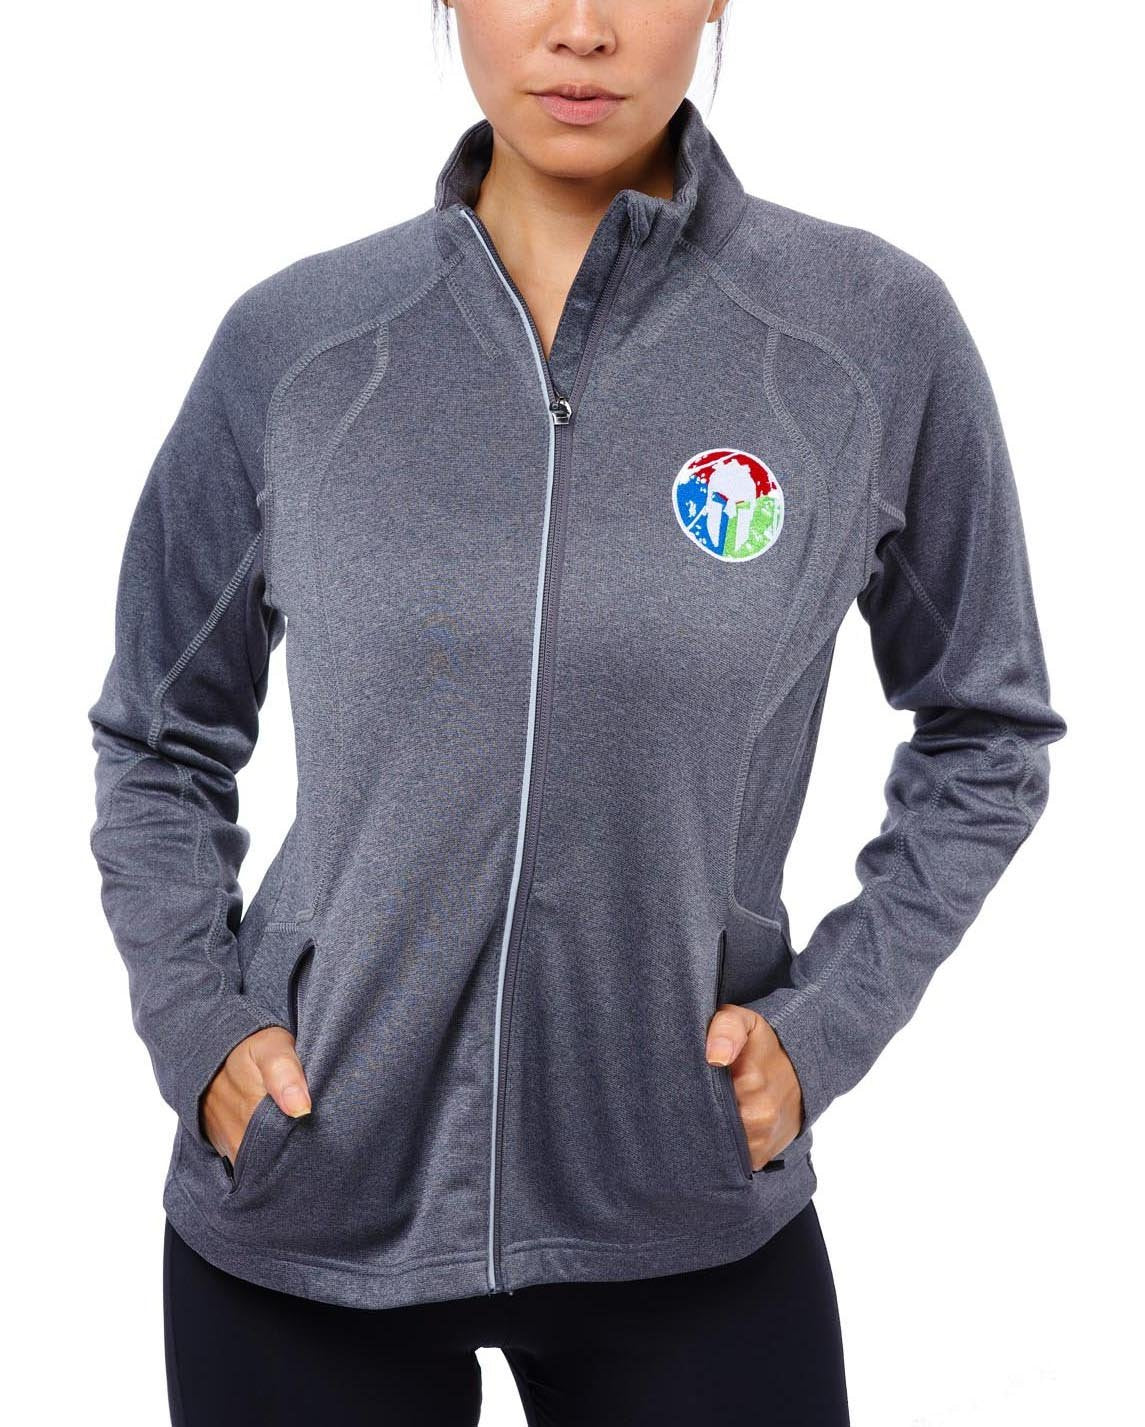 SPARTAN 2018 Trifecta Jacket - Women's